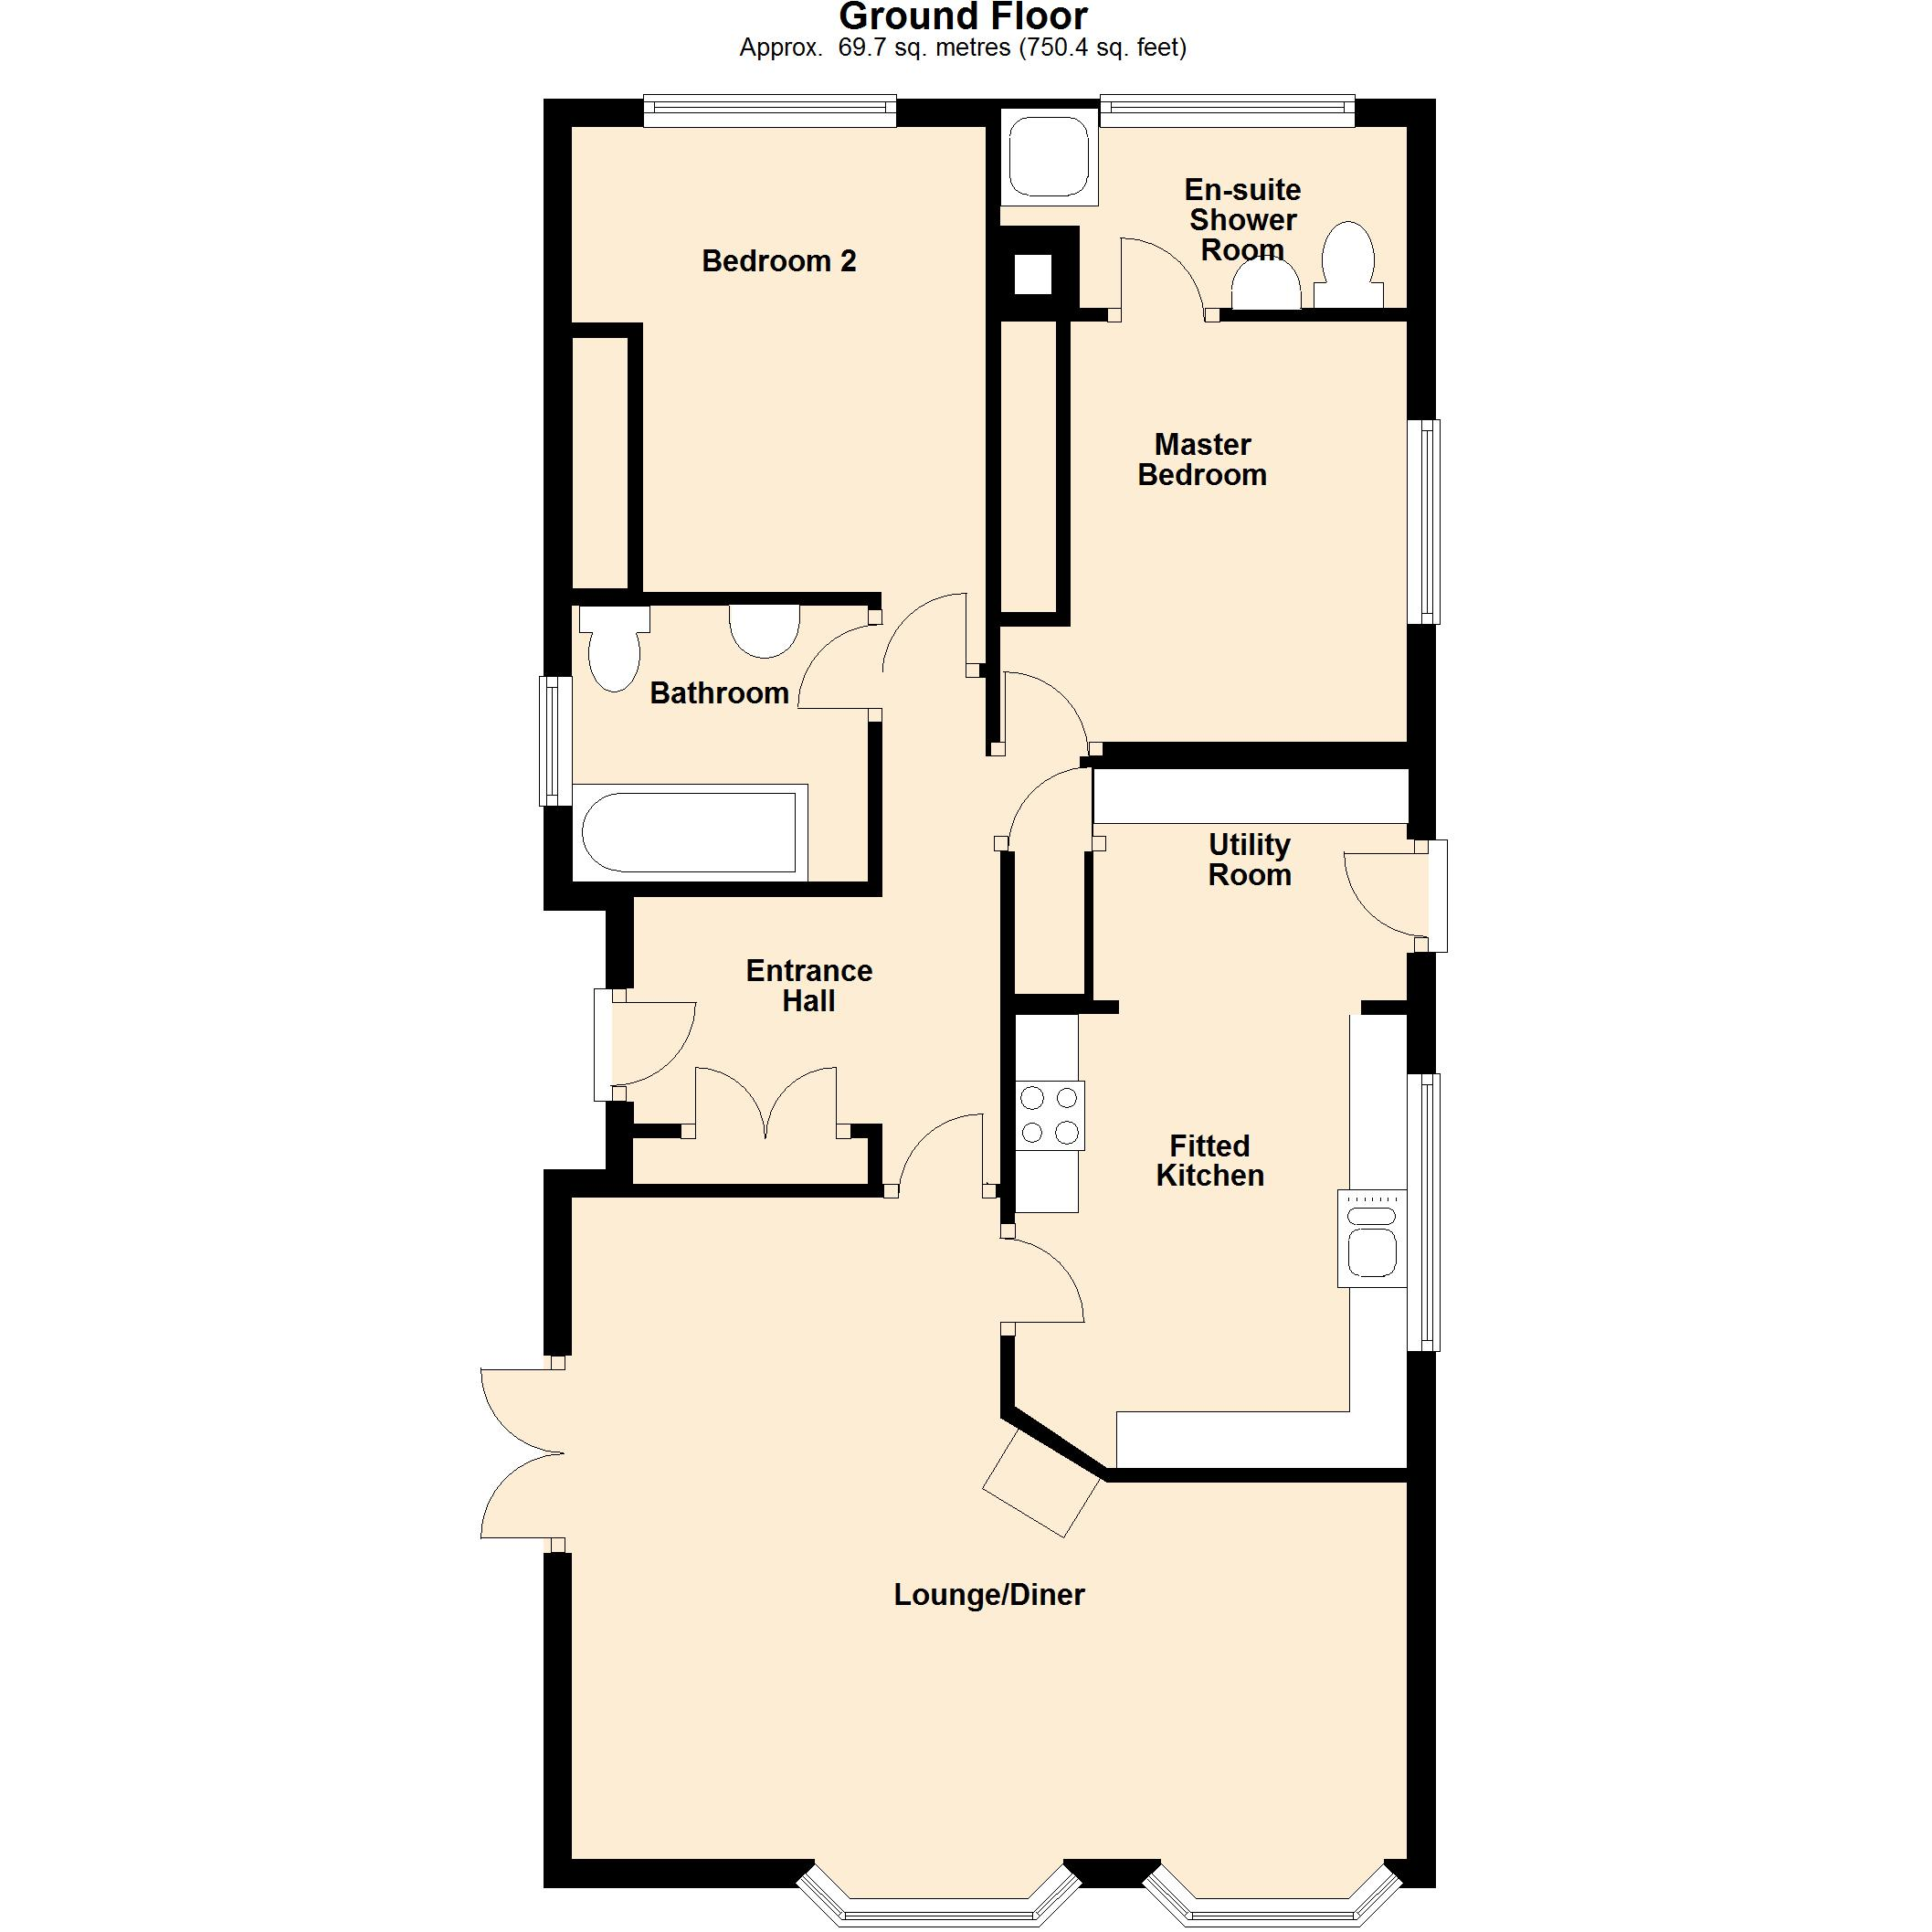 40x20 house plans house design plans for House pics and plans